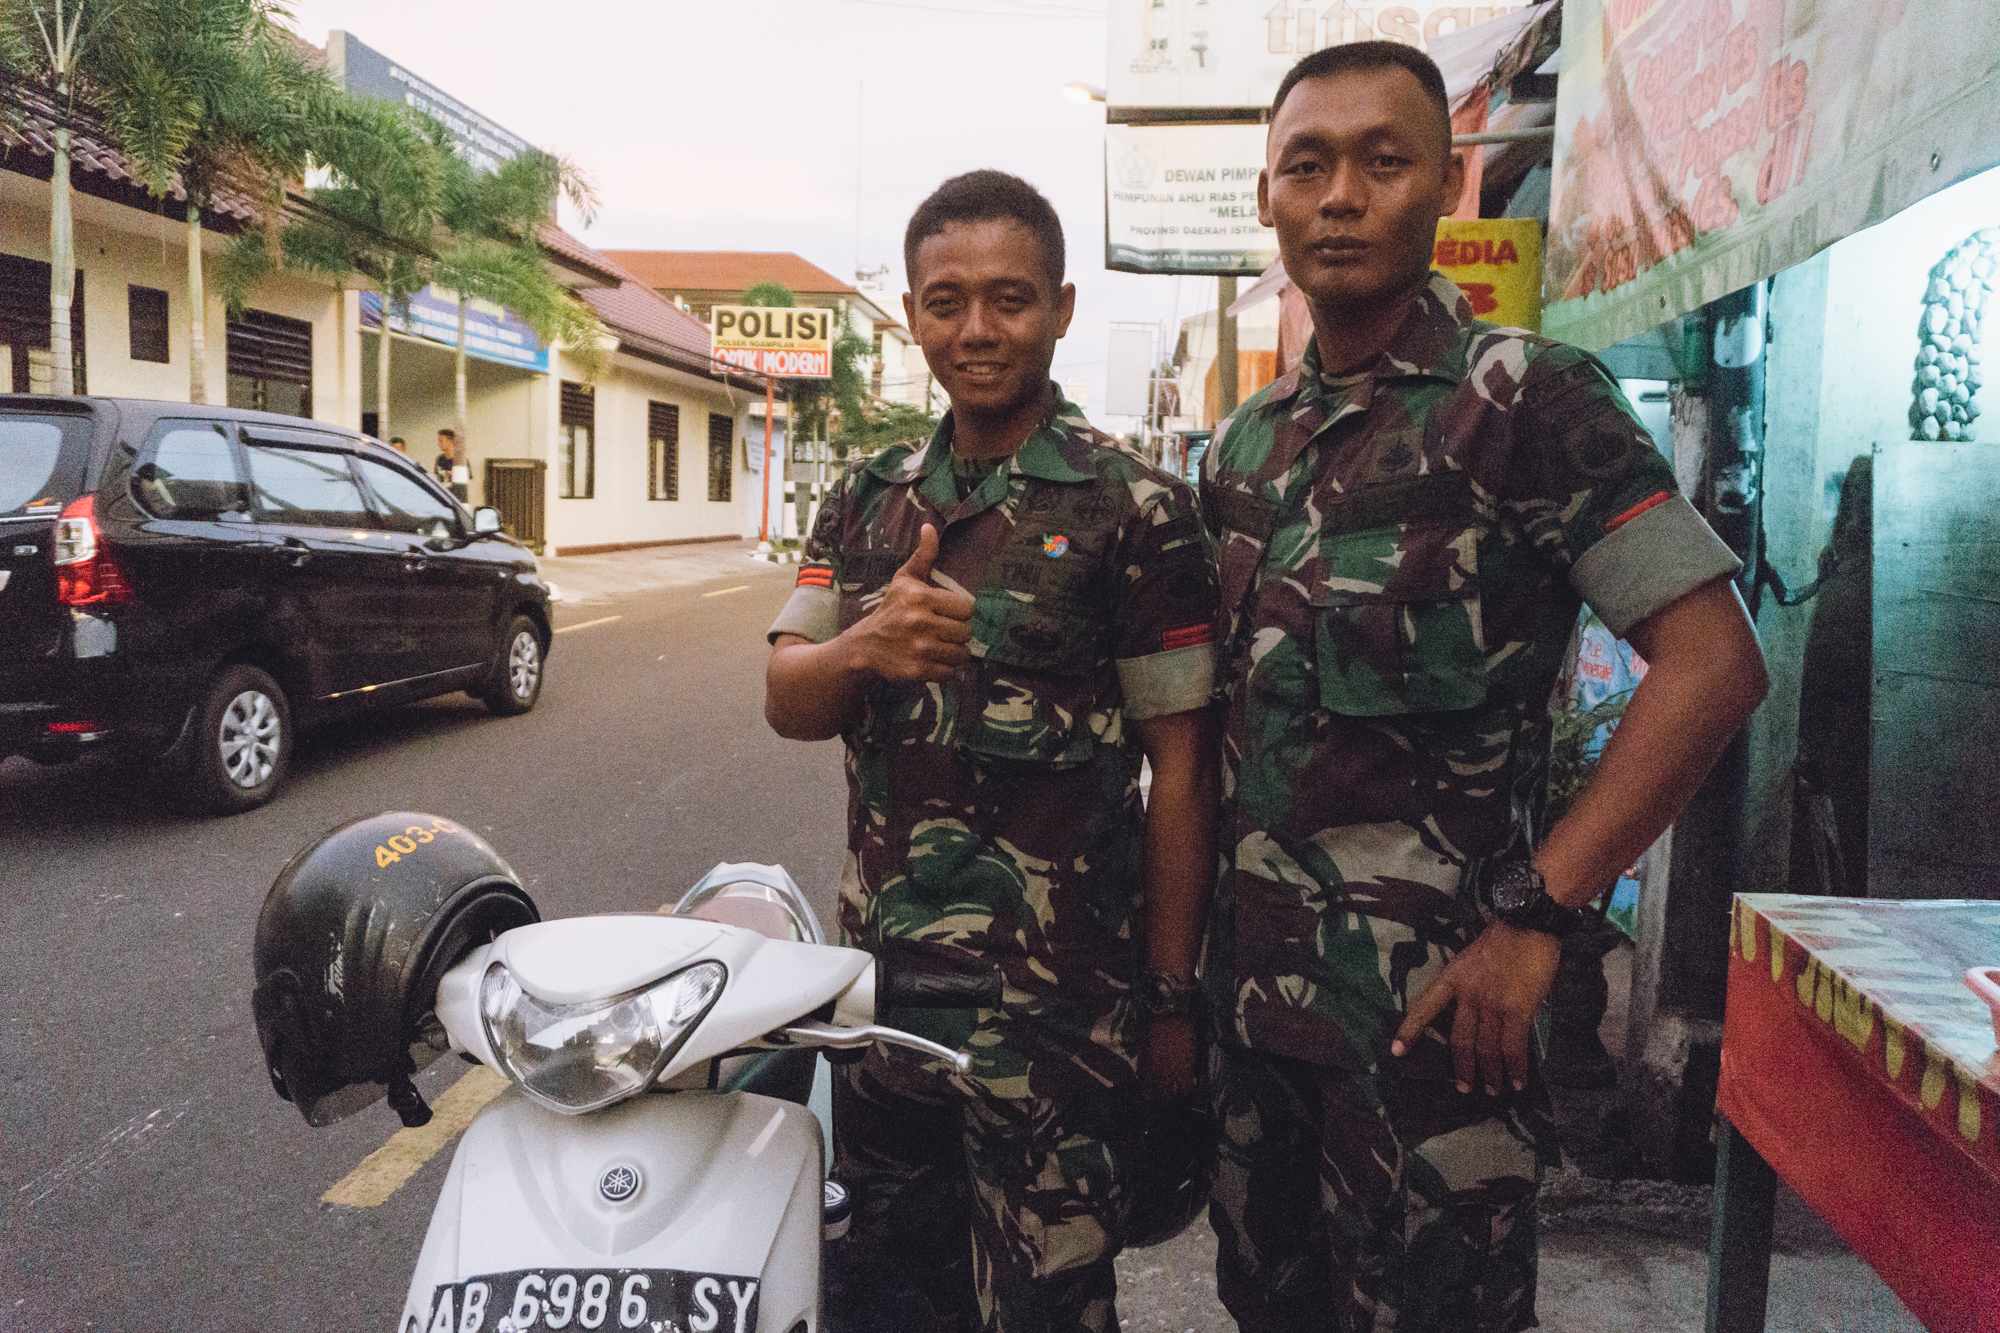 Indo_WEB_Preview-98.jpg